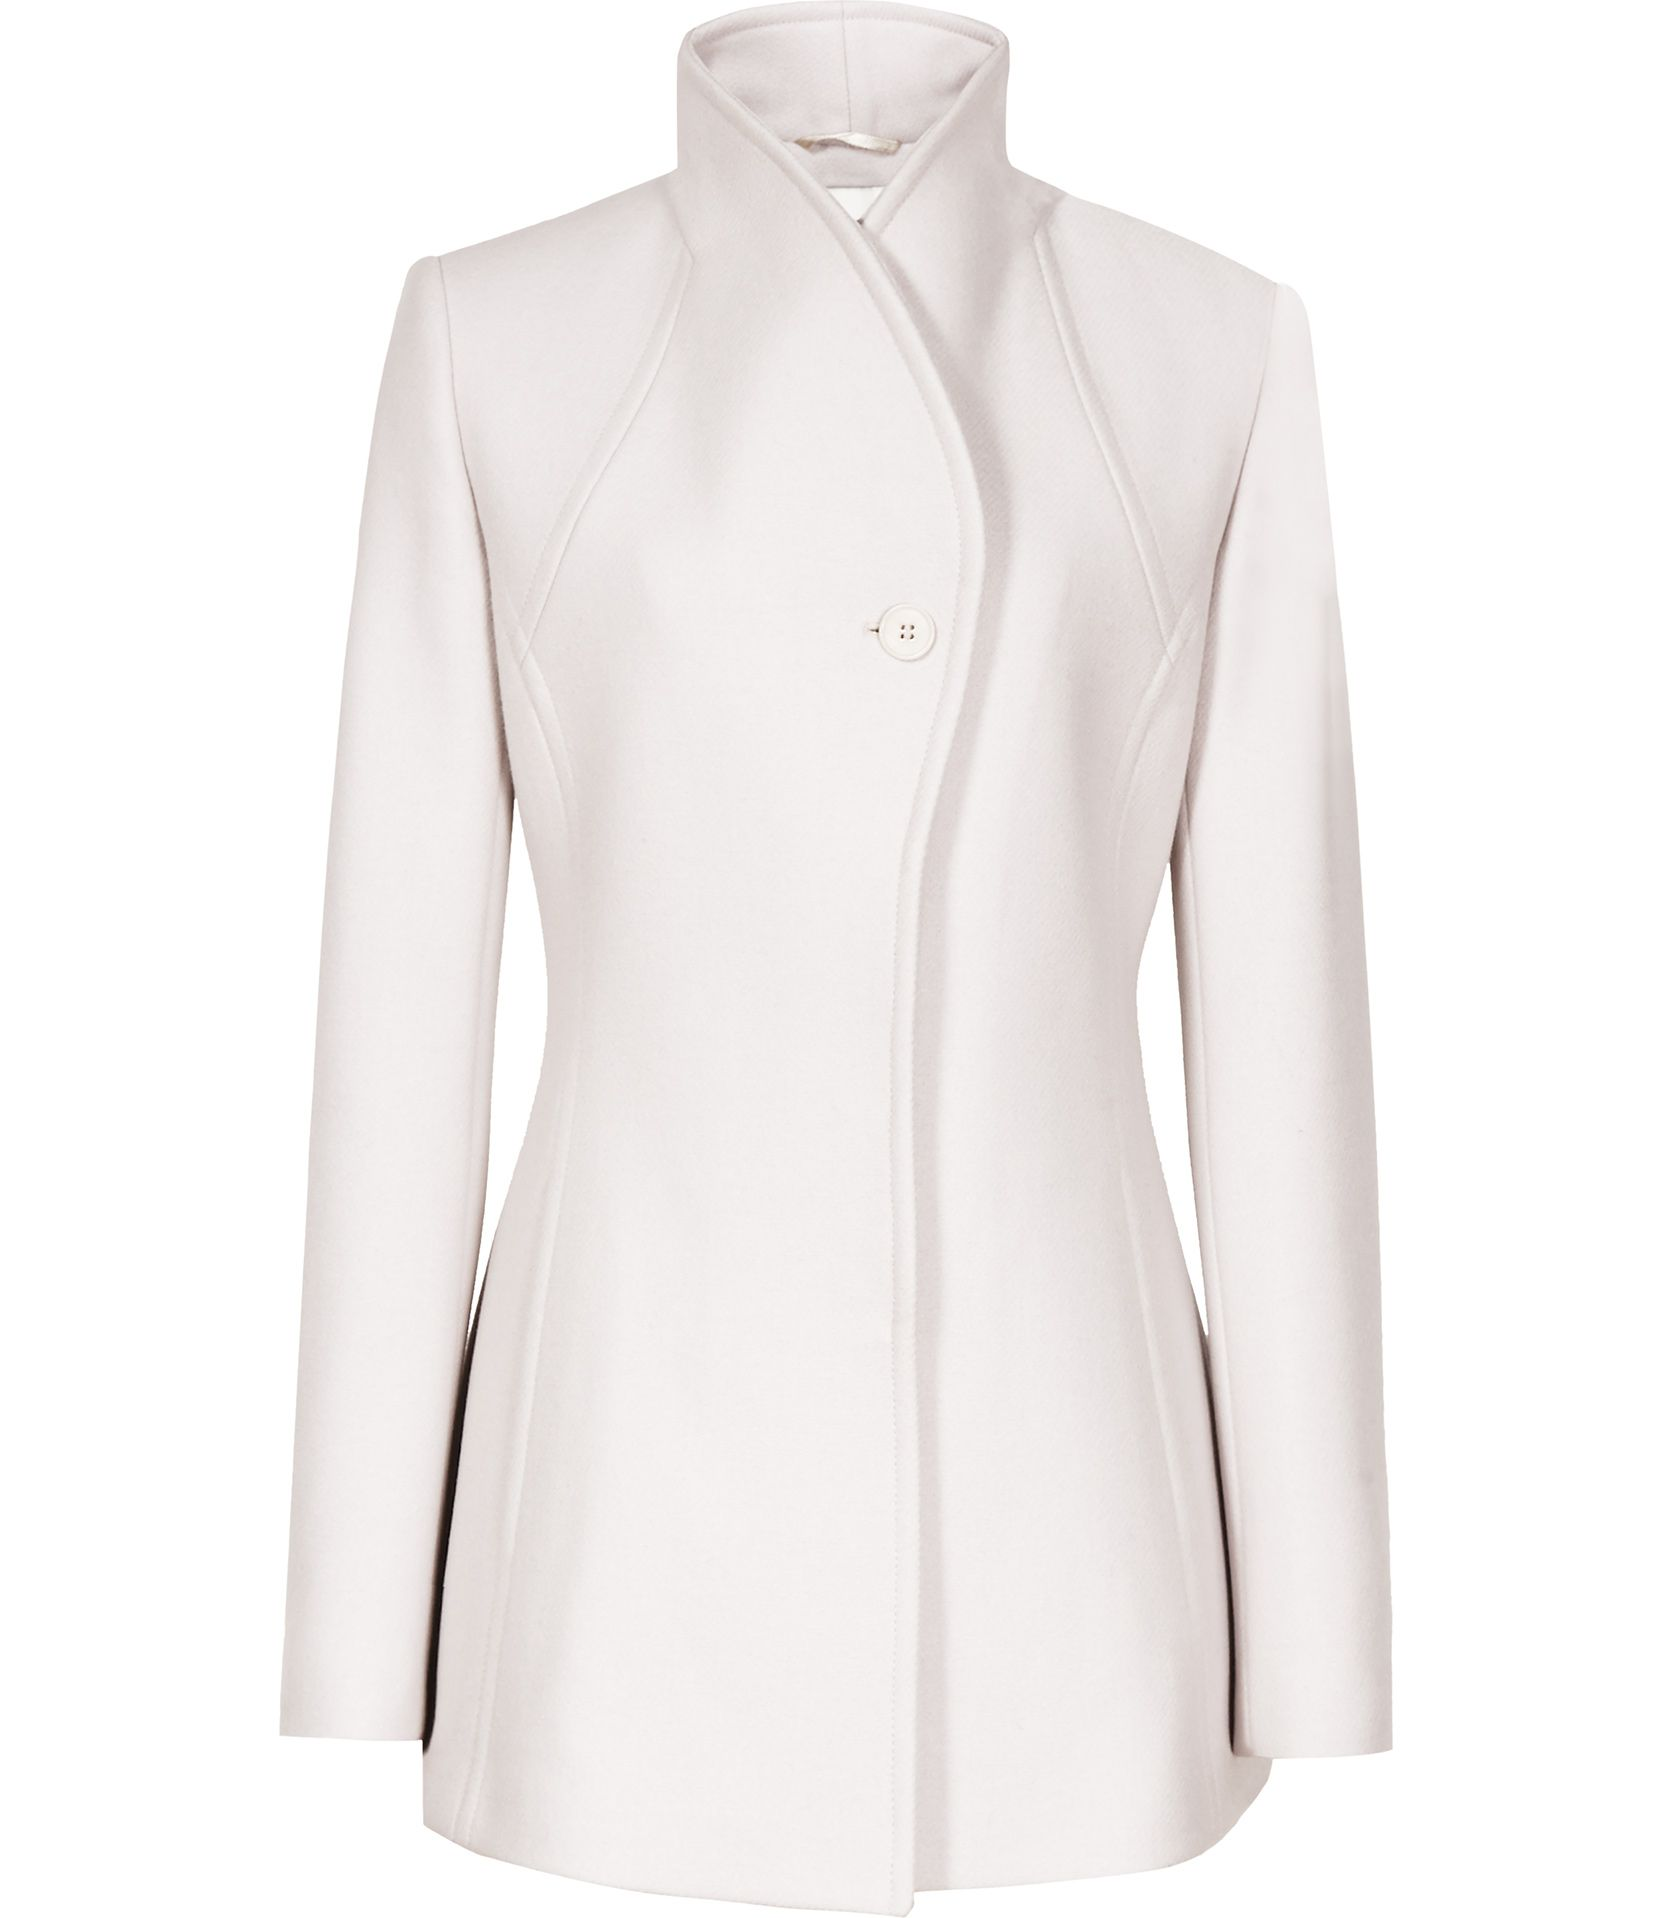 Sienna   High collar, Reiss and Olivia pope